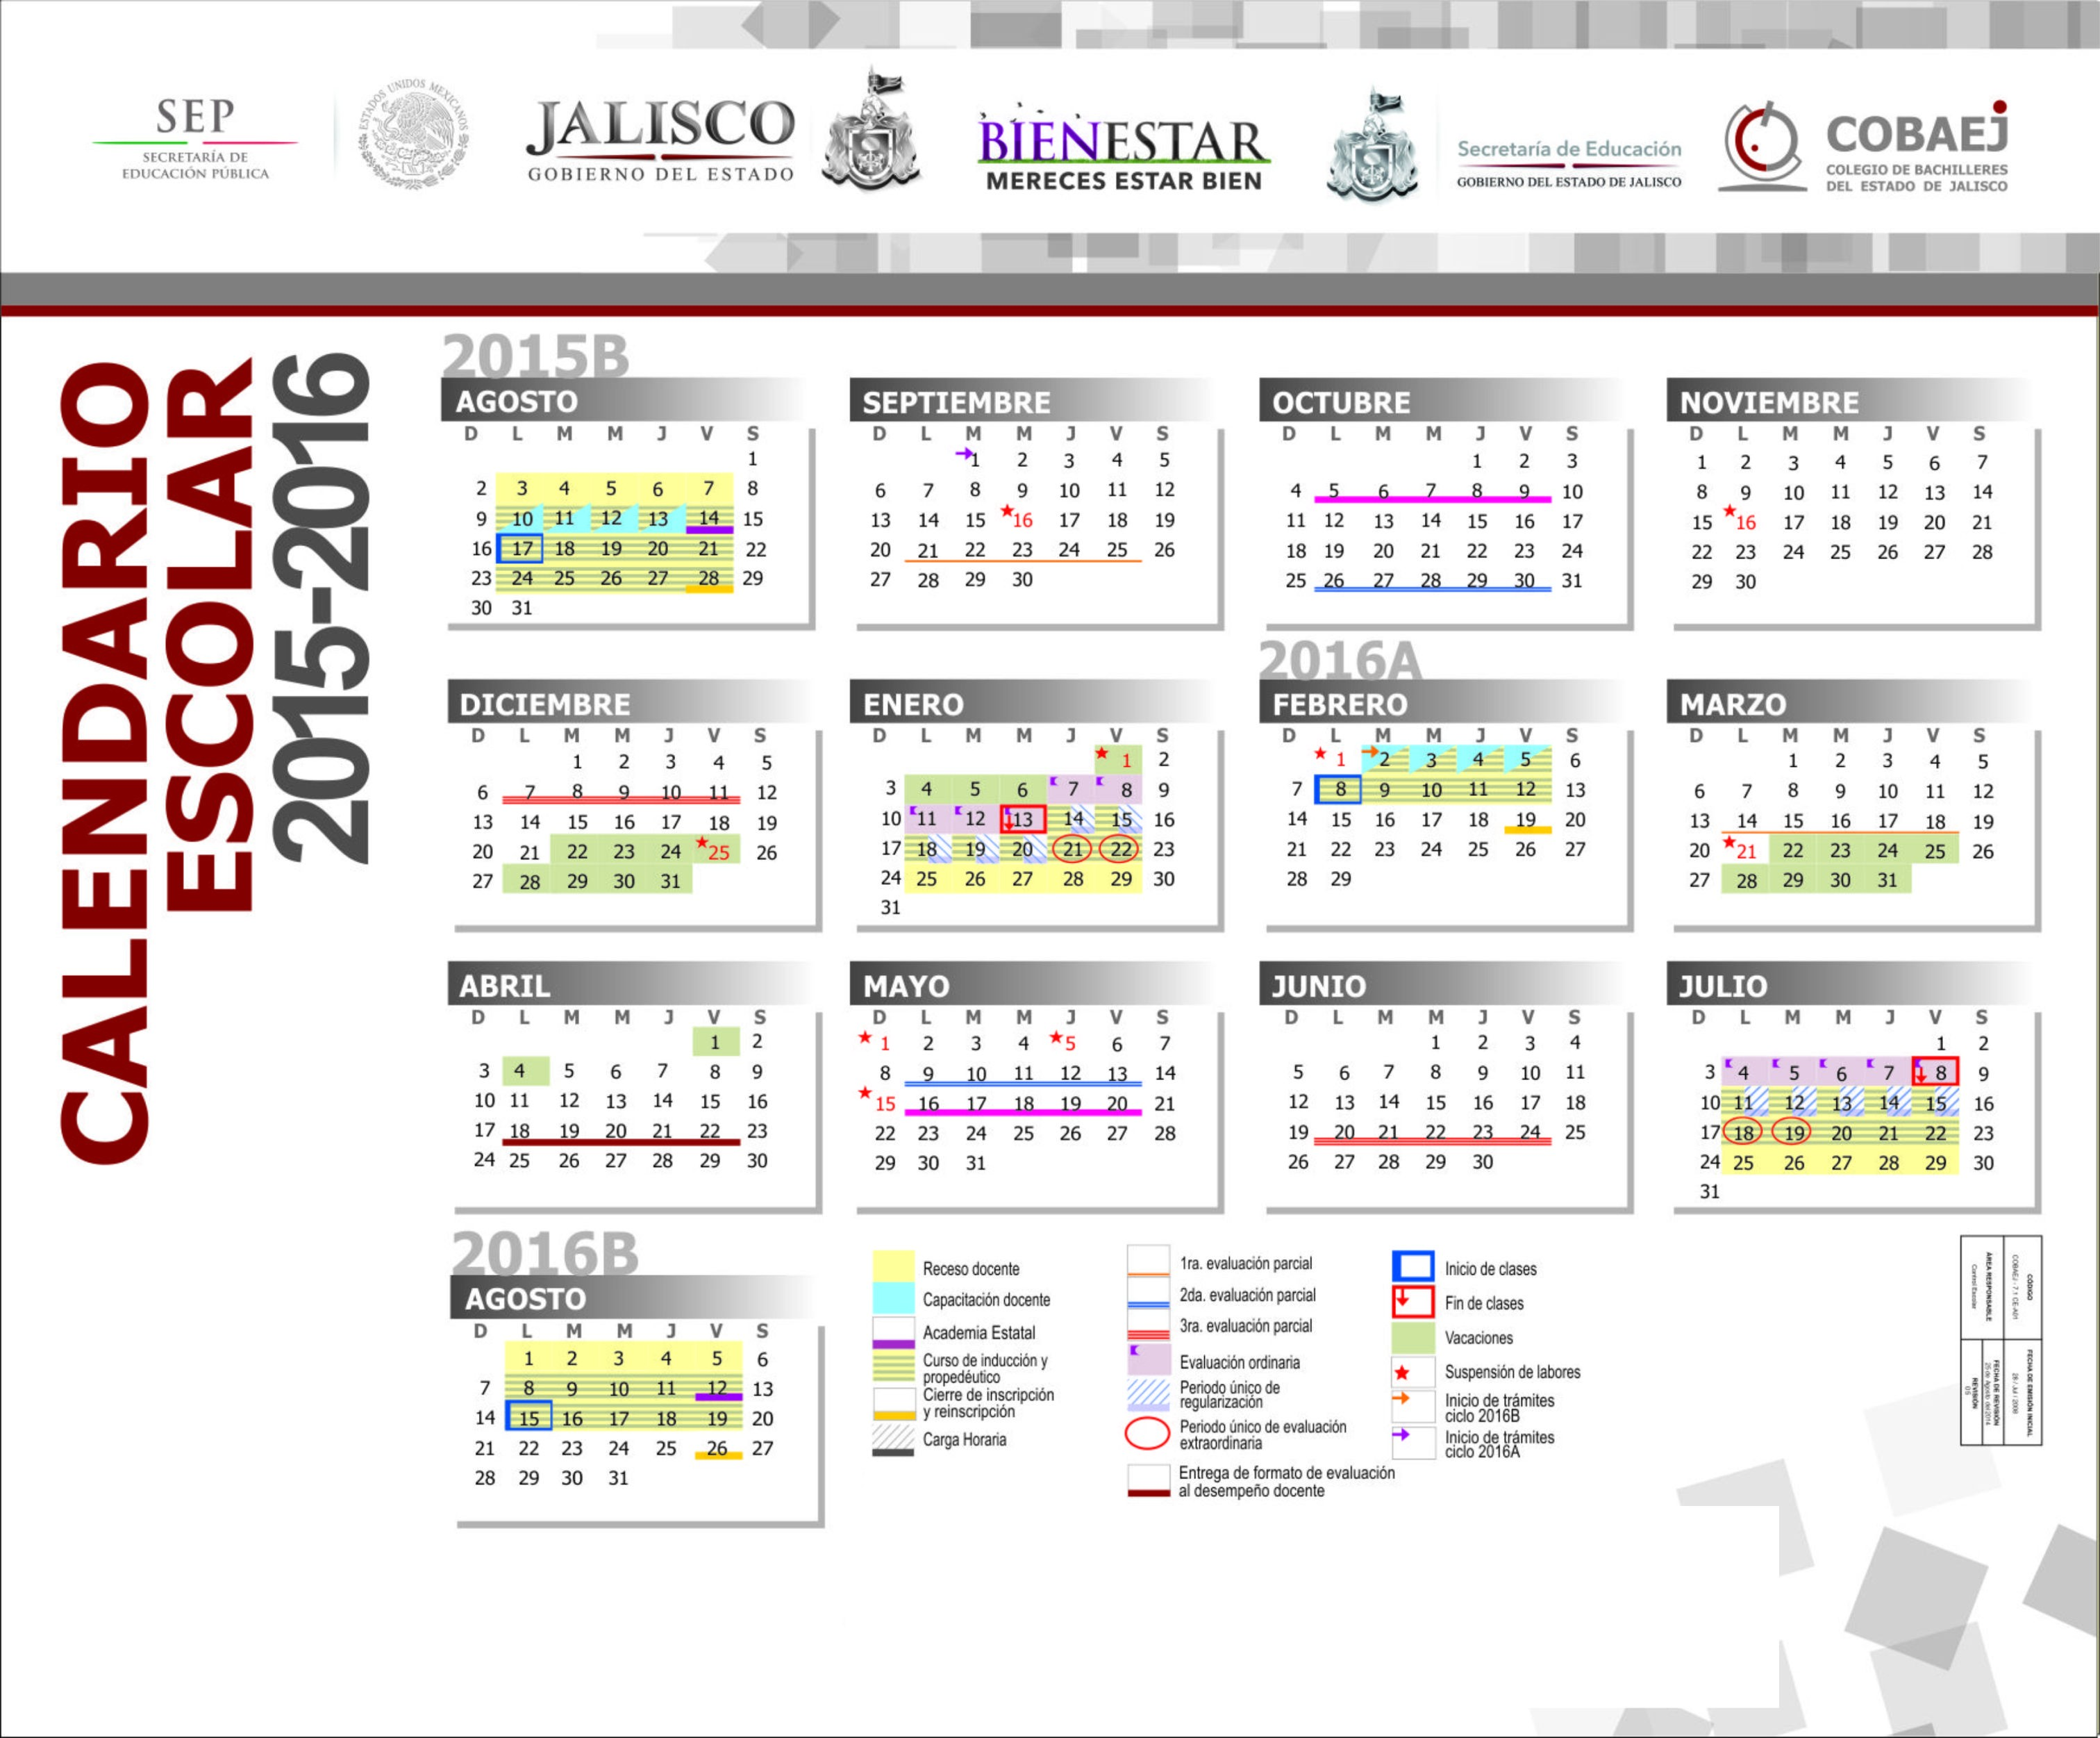 Calendario Lunar 2019 Colombia Más Populares Calendario 2015 1 Copy Universidad Nacional Autnoma De Mxico Of Calendario Lunar 2019 Colombia Más Recientes Best Calendario Mes De Septiembre 2015 Image Collection